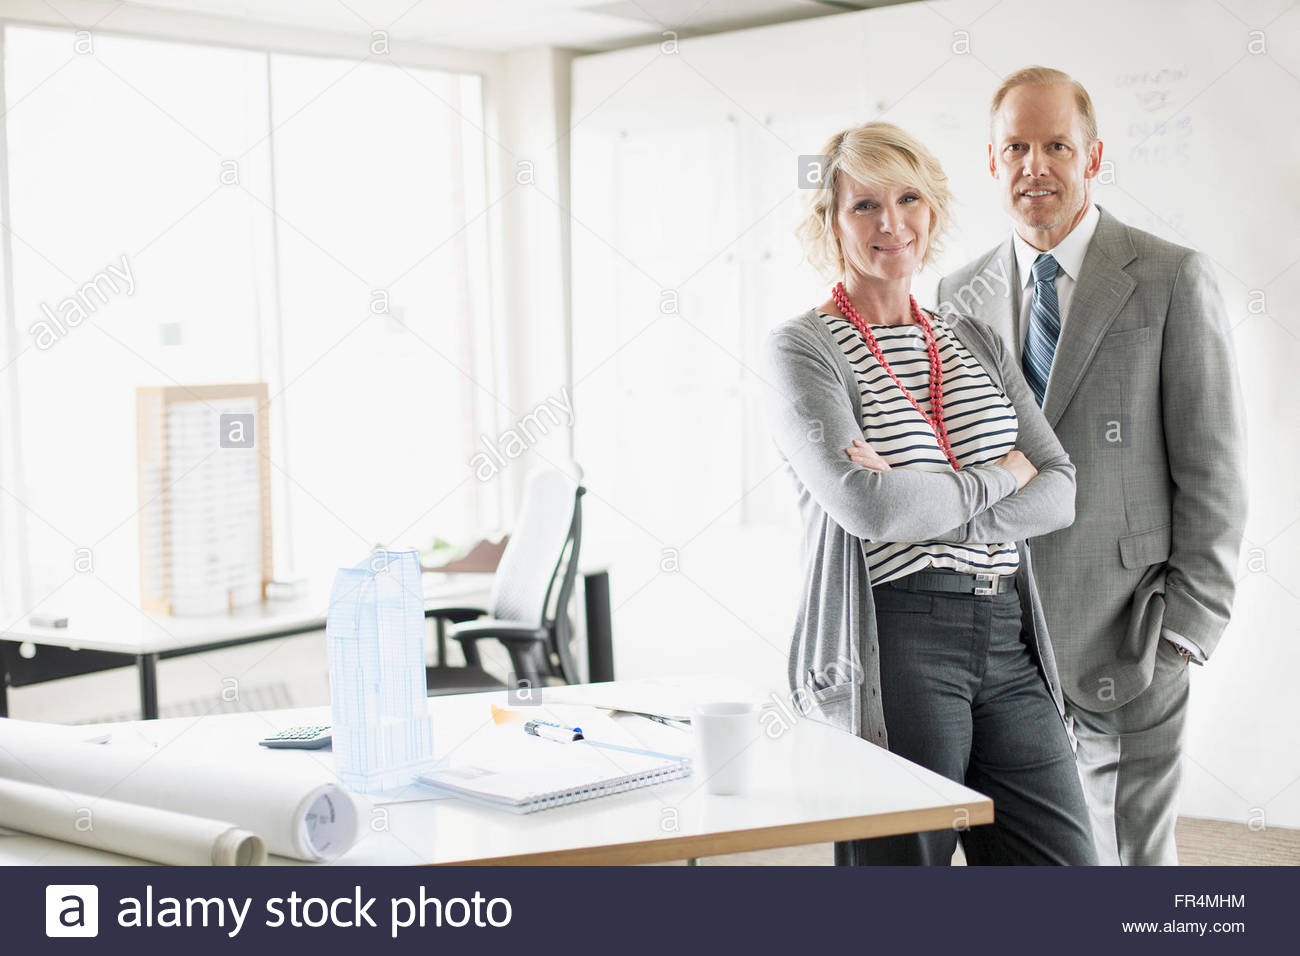 colleagues standing by desk in architect office - Stock Image